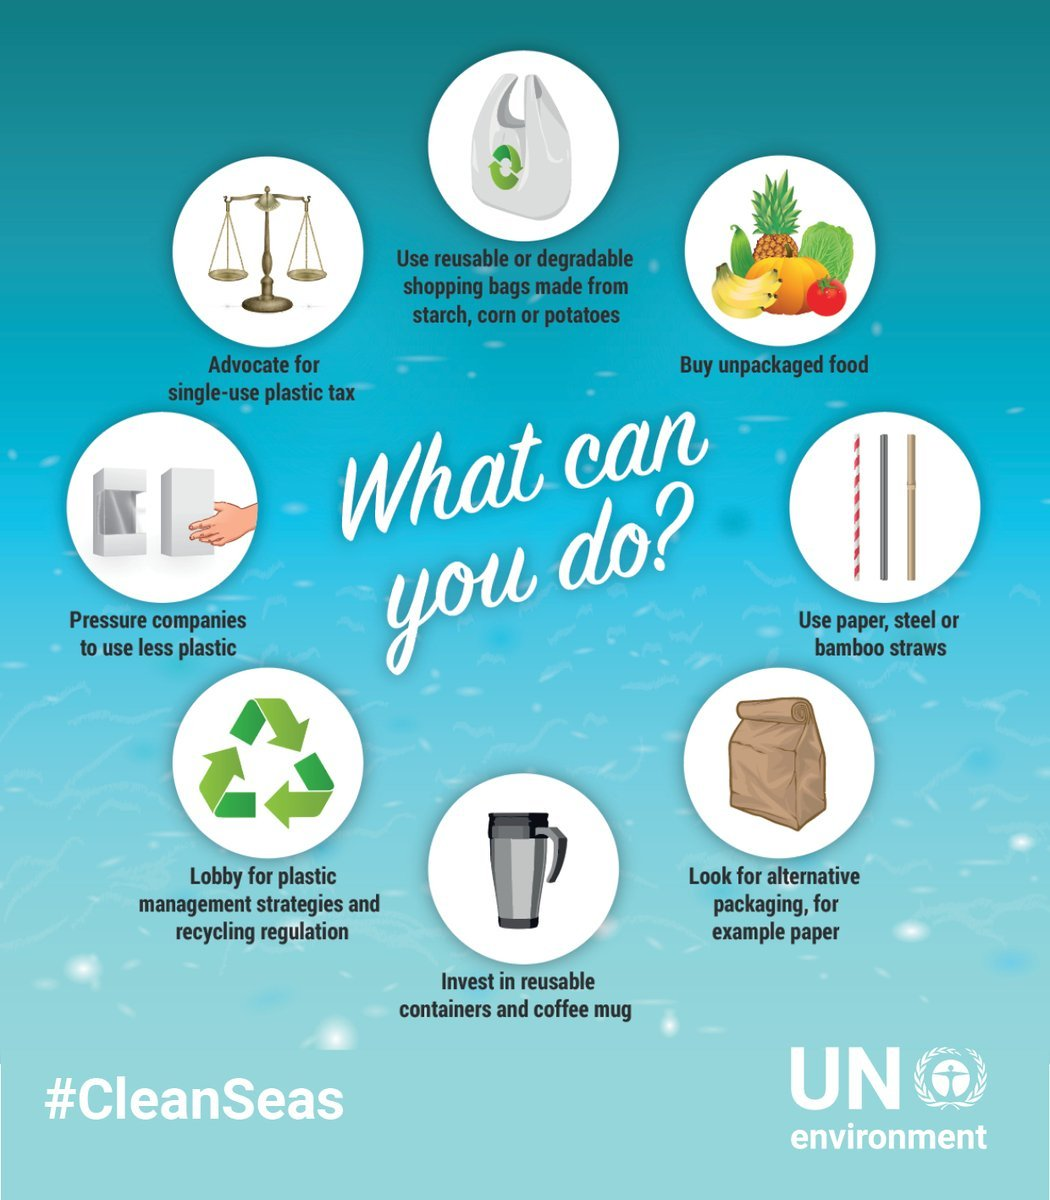 Trillions of microplastic particles are already in our oceans.   On Monday's #EarthDay, learn how you can help #BeatPlasticPollution & take #ClimateAction for #CleanSeas: http://bit.ly/2lLcSgw